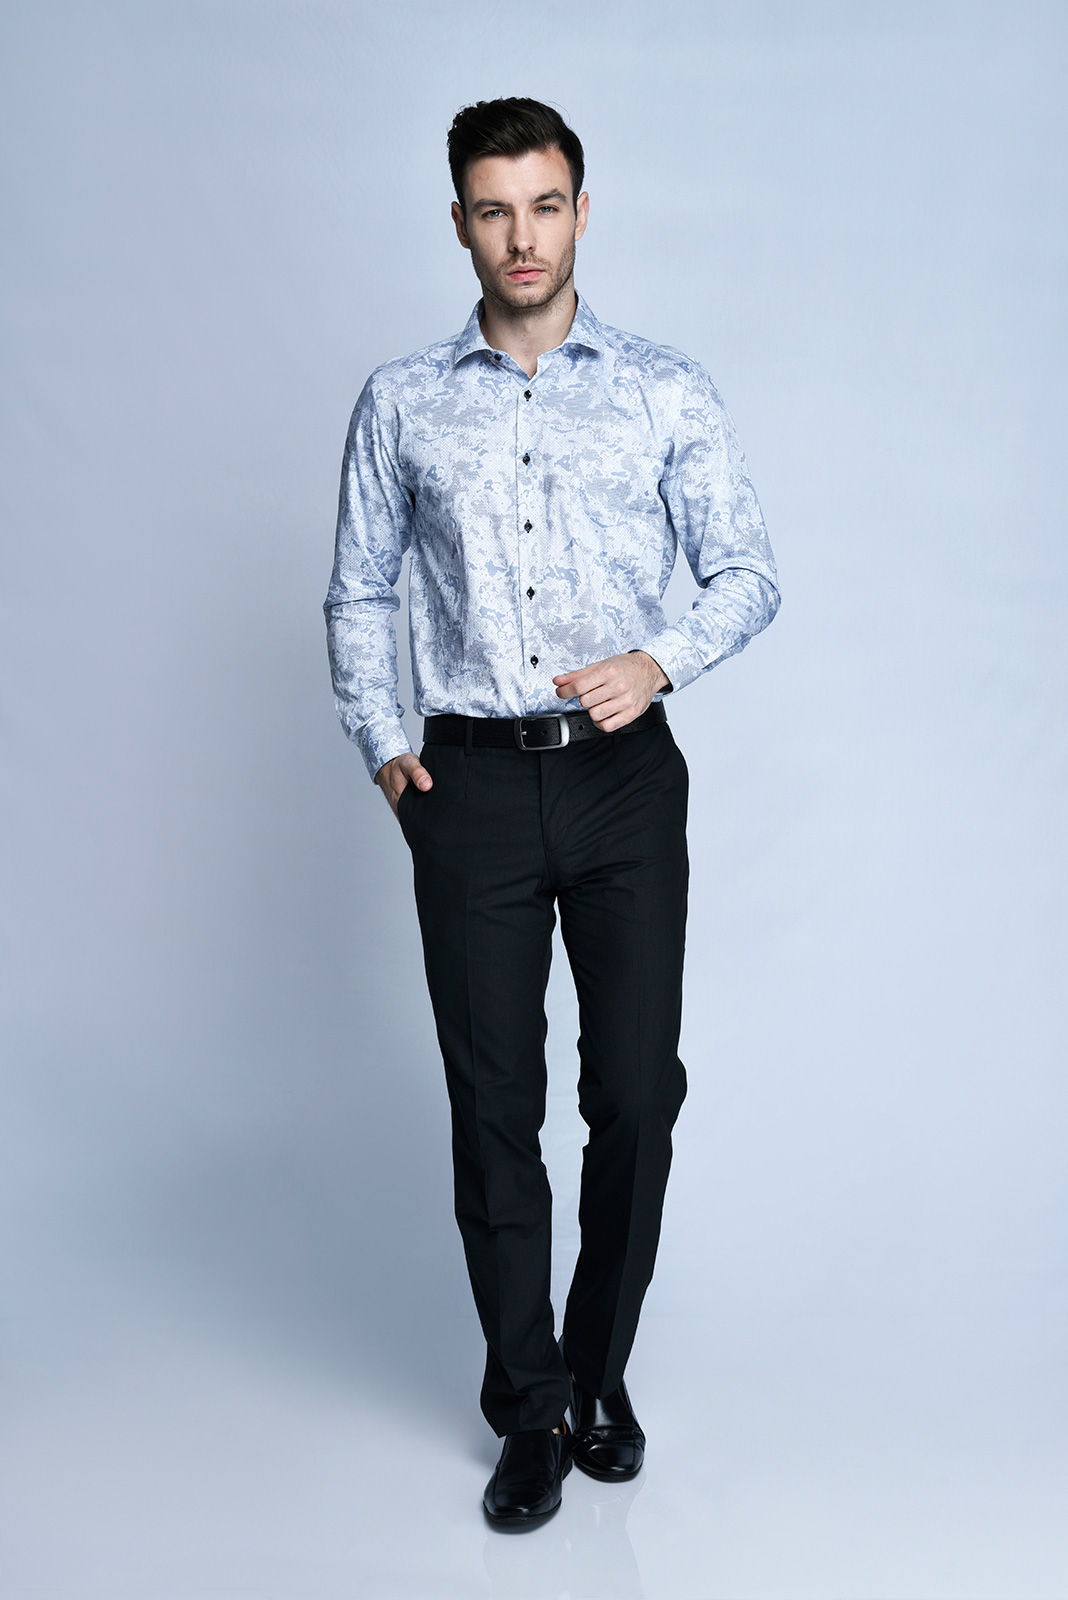 KEMEJA TANGAN PANJANG FORMAL SLIM FIT 11 (BIRU)